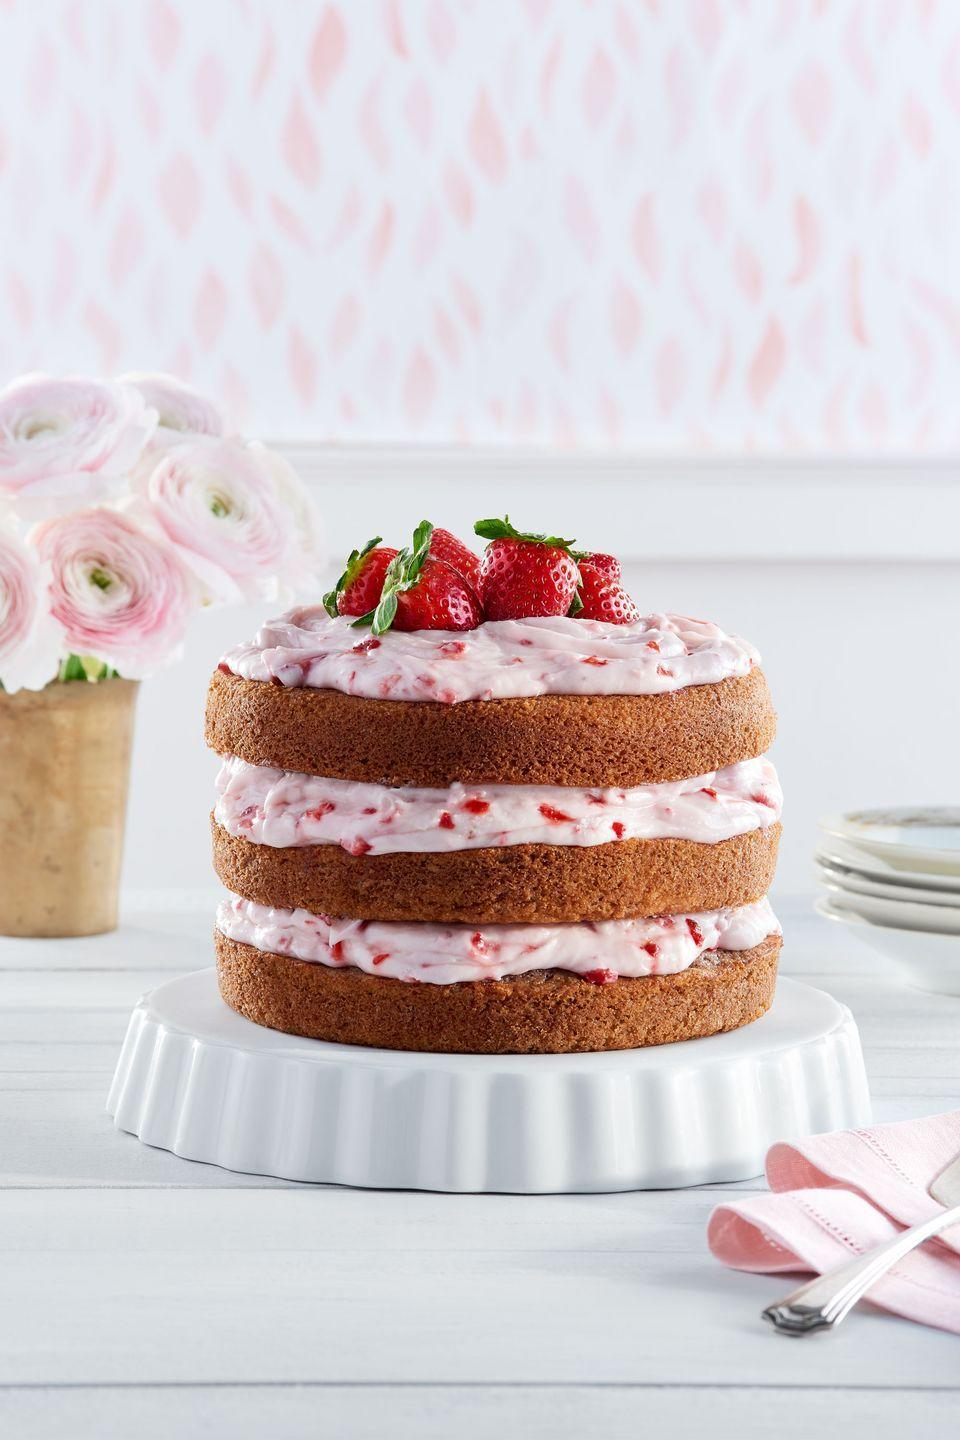 "<p>Treat your Easter guests to a fruity and fresh dessert.</p><p><strong><a href=""https://www.countryliving.com/food-drinks/recipes/a37720/strawberry-limeade-cake-strawberry-cream-cheese-frosting-recipe/"" rel=""nofollow noopener"" target=""_blank"" data-ylk=""slk:Get the recipe"" class=""link rapid-noclick-resp"">Get the recipe</a>.</strong></p>"